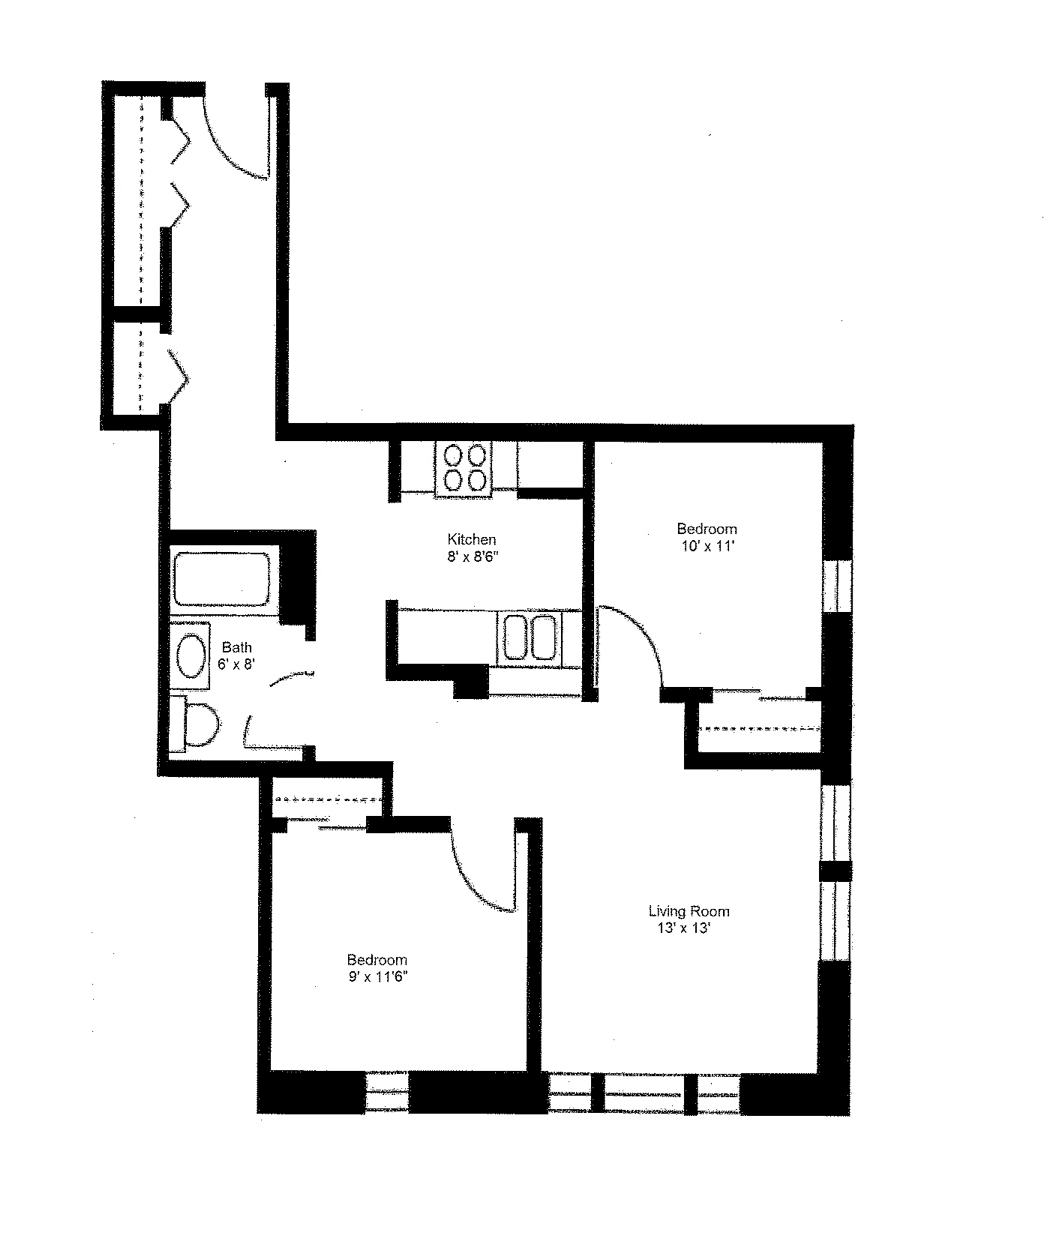 2 Bedroom Large Floor Plan 1